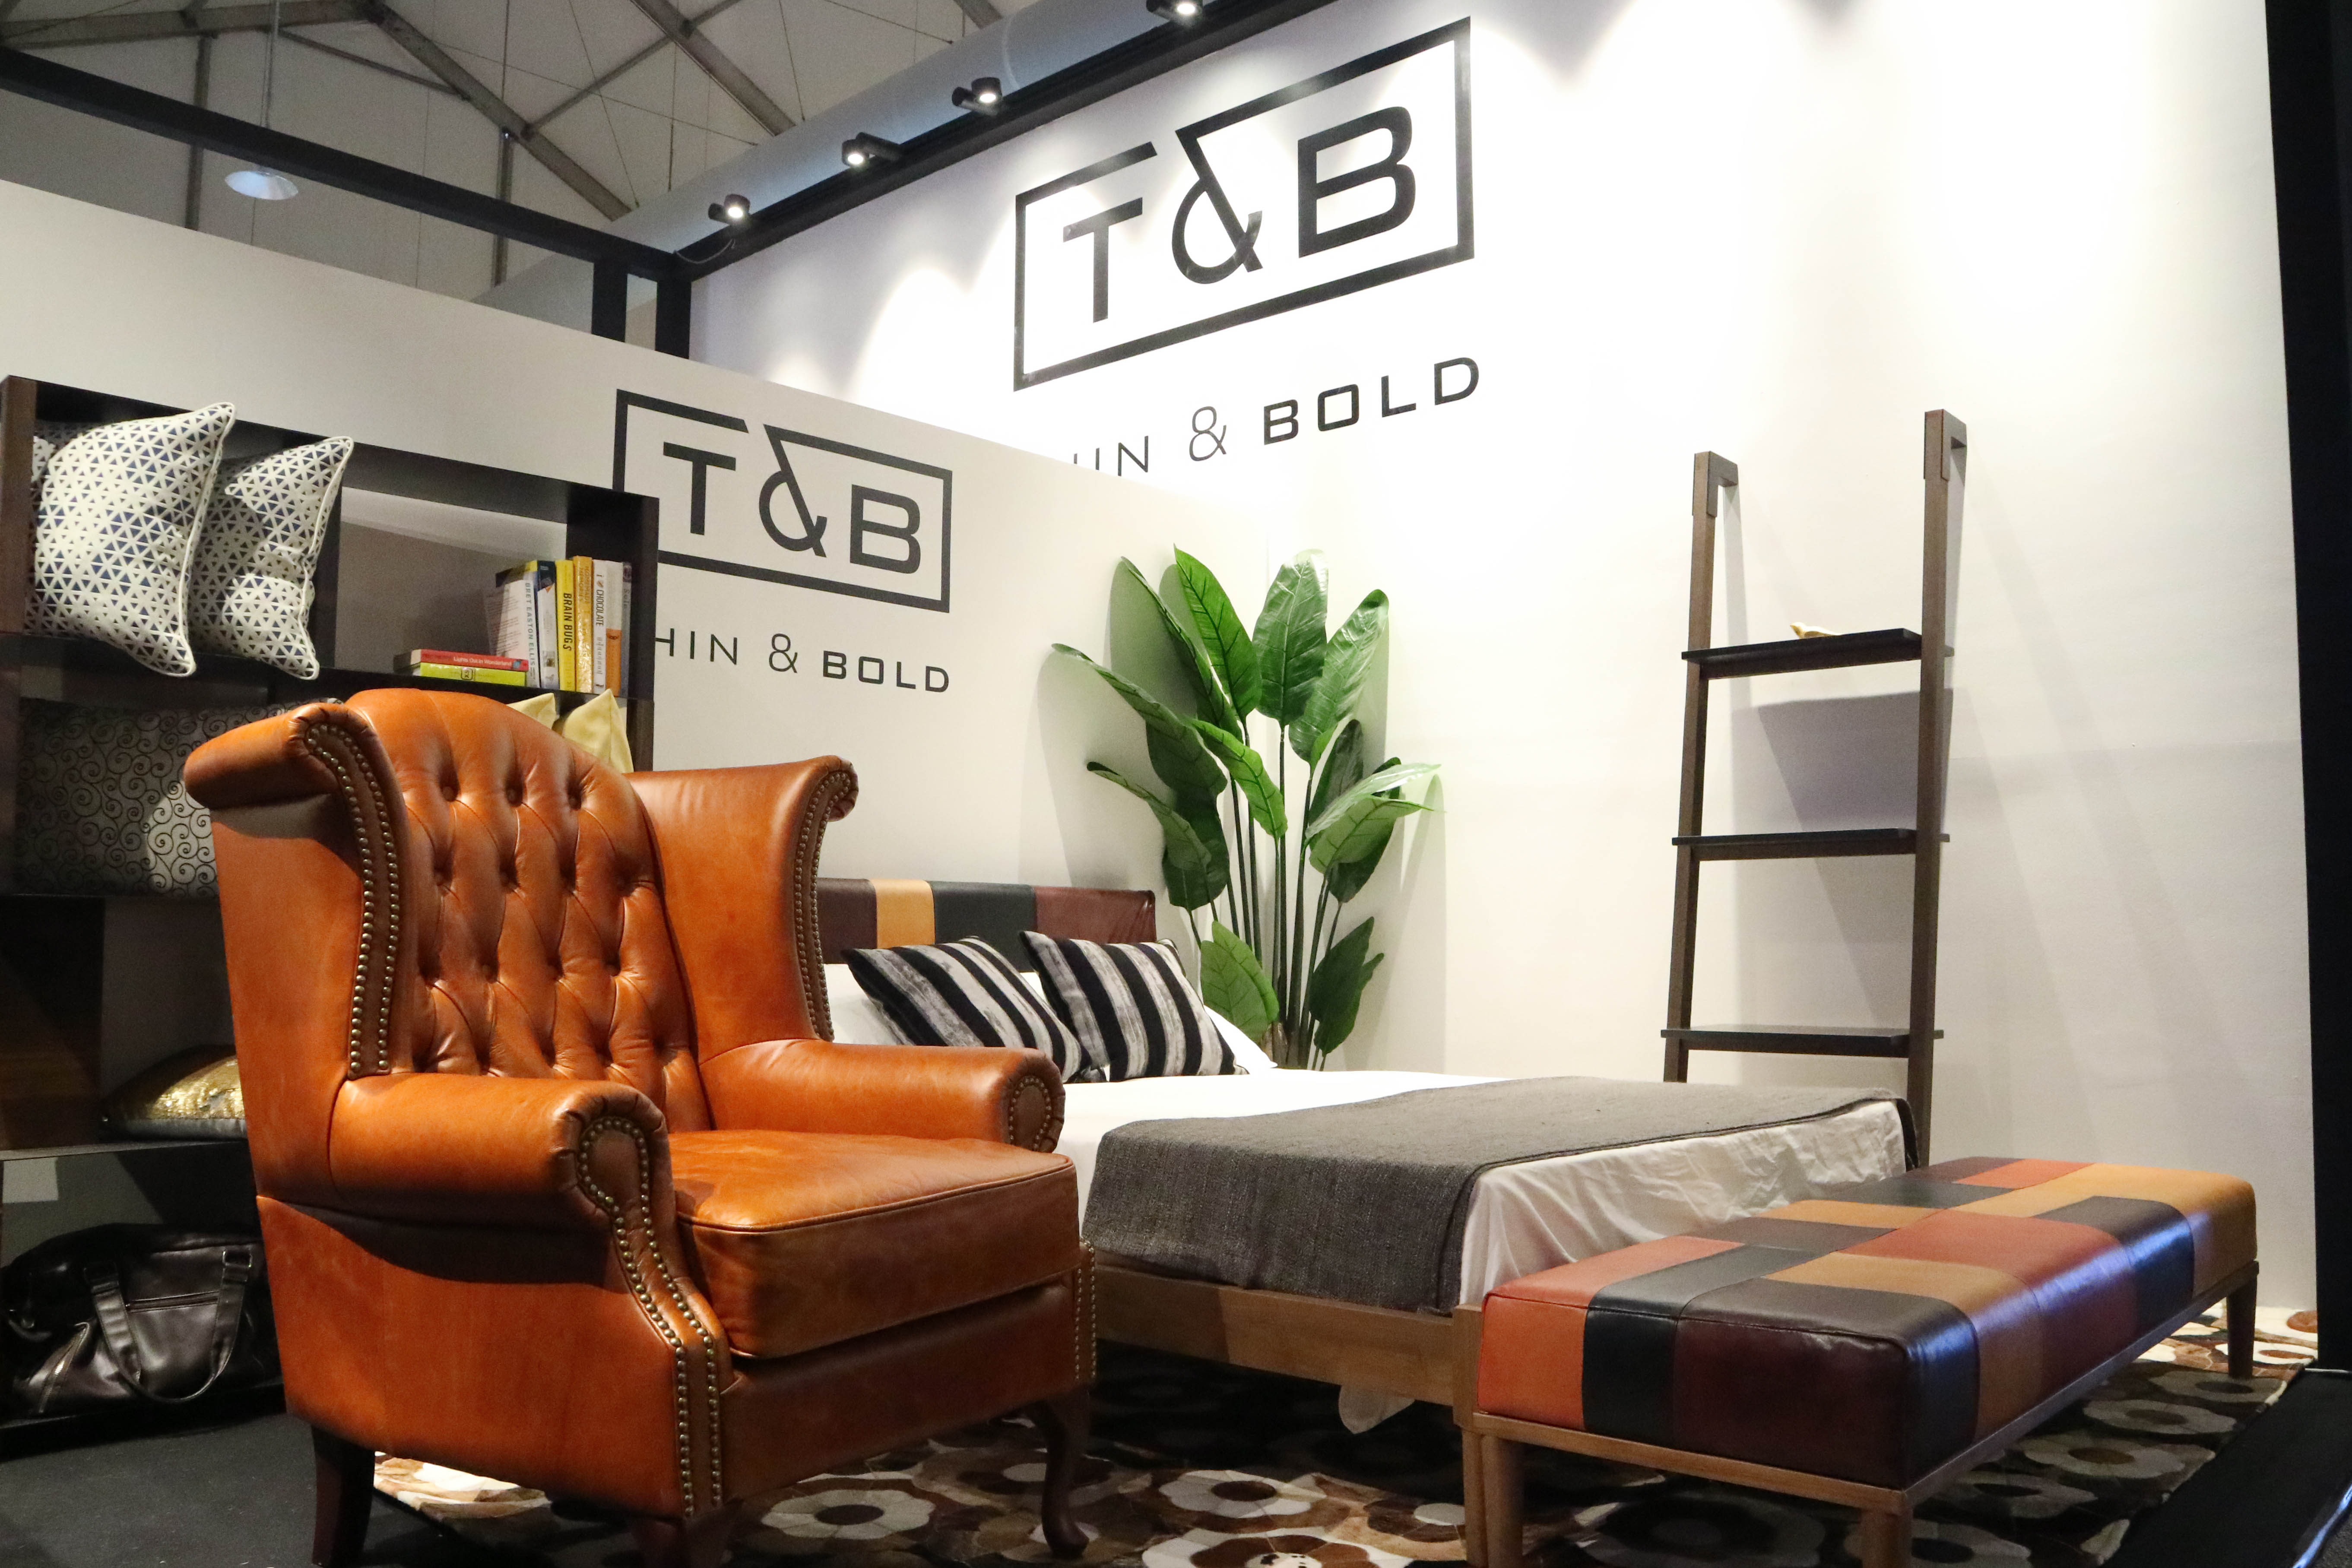 Homedec showcases the latest in home and interior design